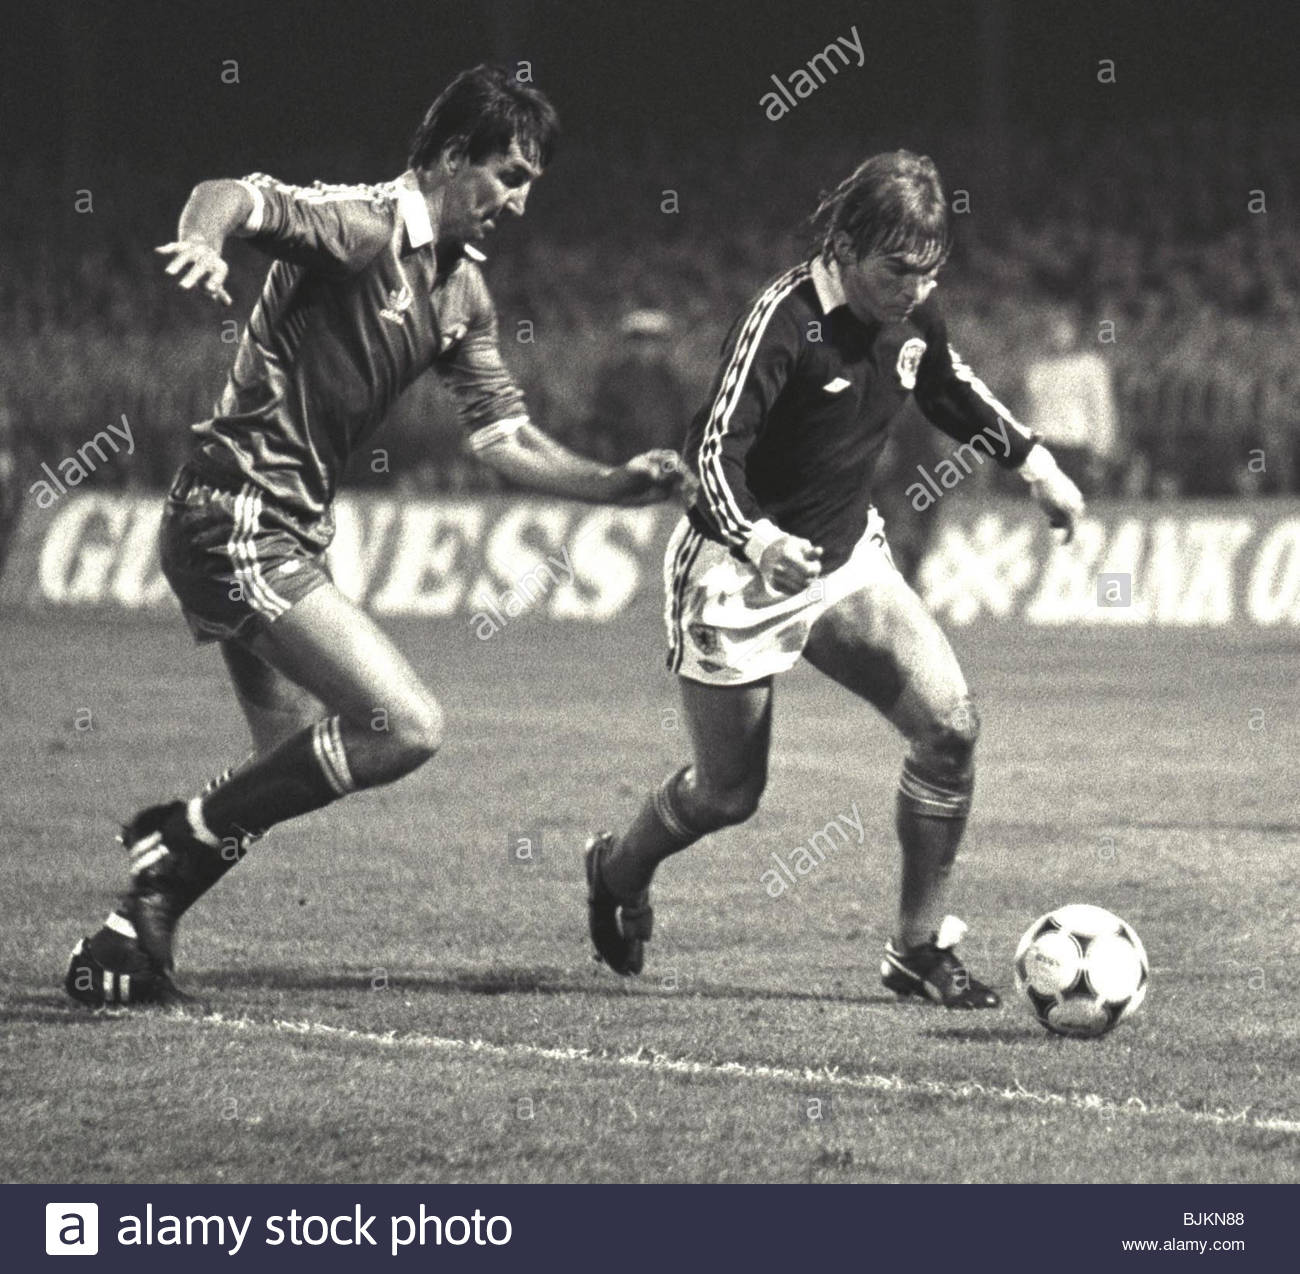 15/10/81 INTERNATIONAL SCOTLAND V NORTHERN IRELAND HAMPDEN - GLASGOW Kenny Dalglish is put under pressure by N.Ireland - Stock Image